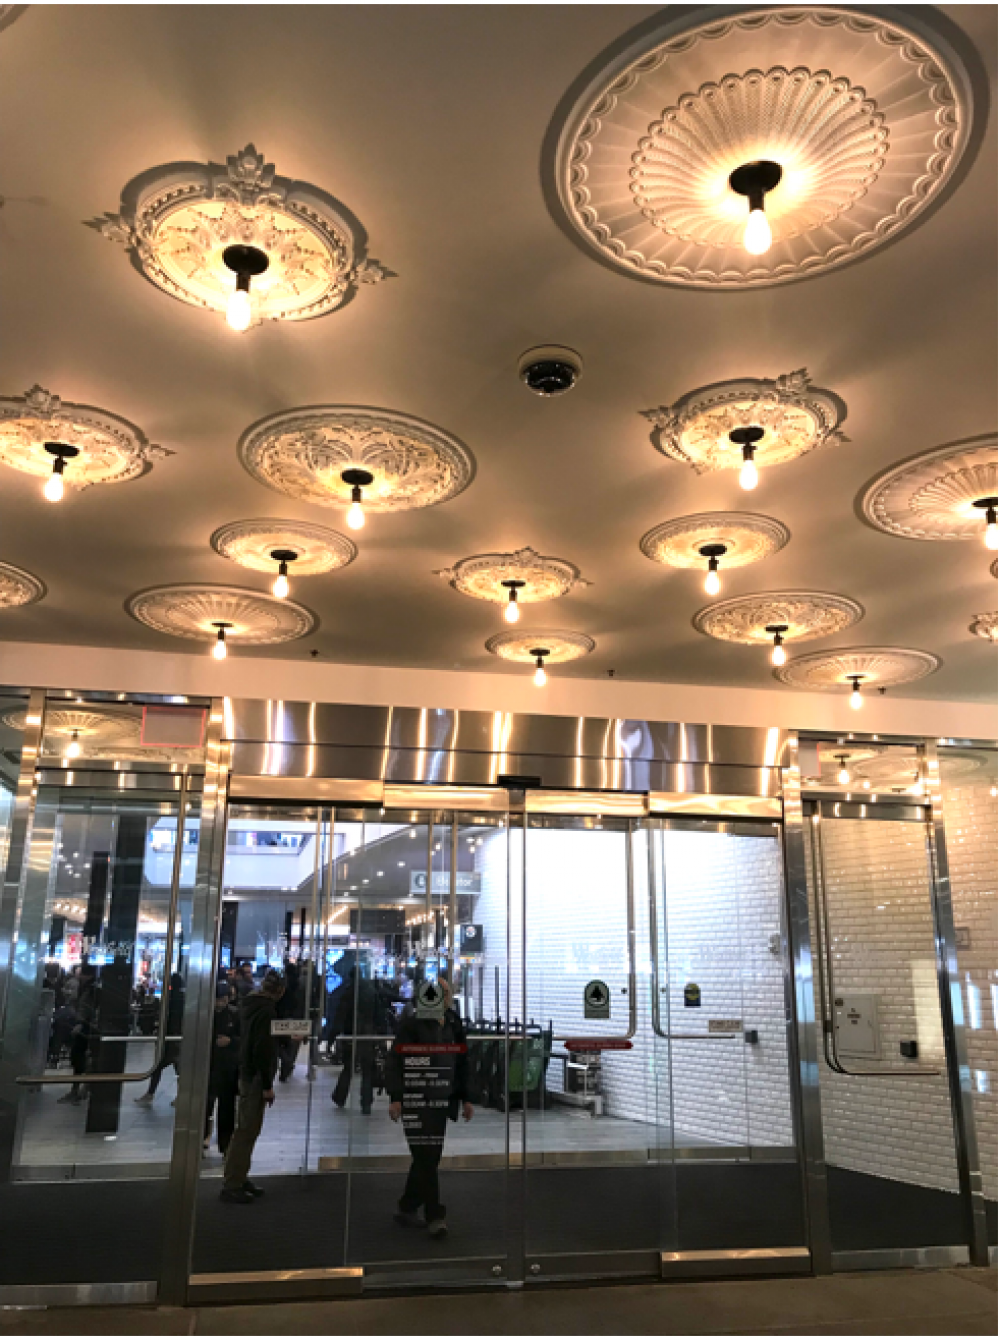 Overcoming mall vulnerabilities with security solutions (Asmag, September 2018)